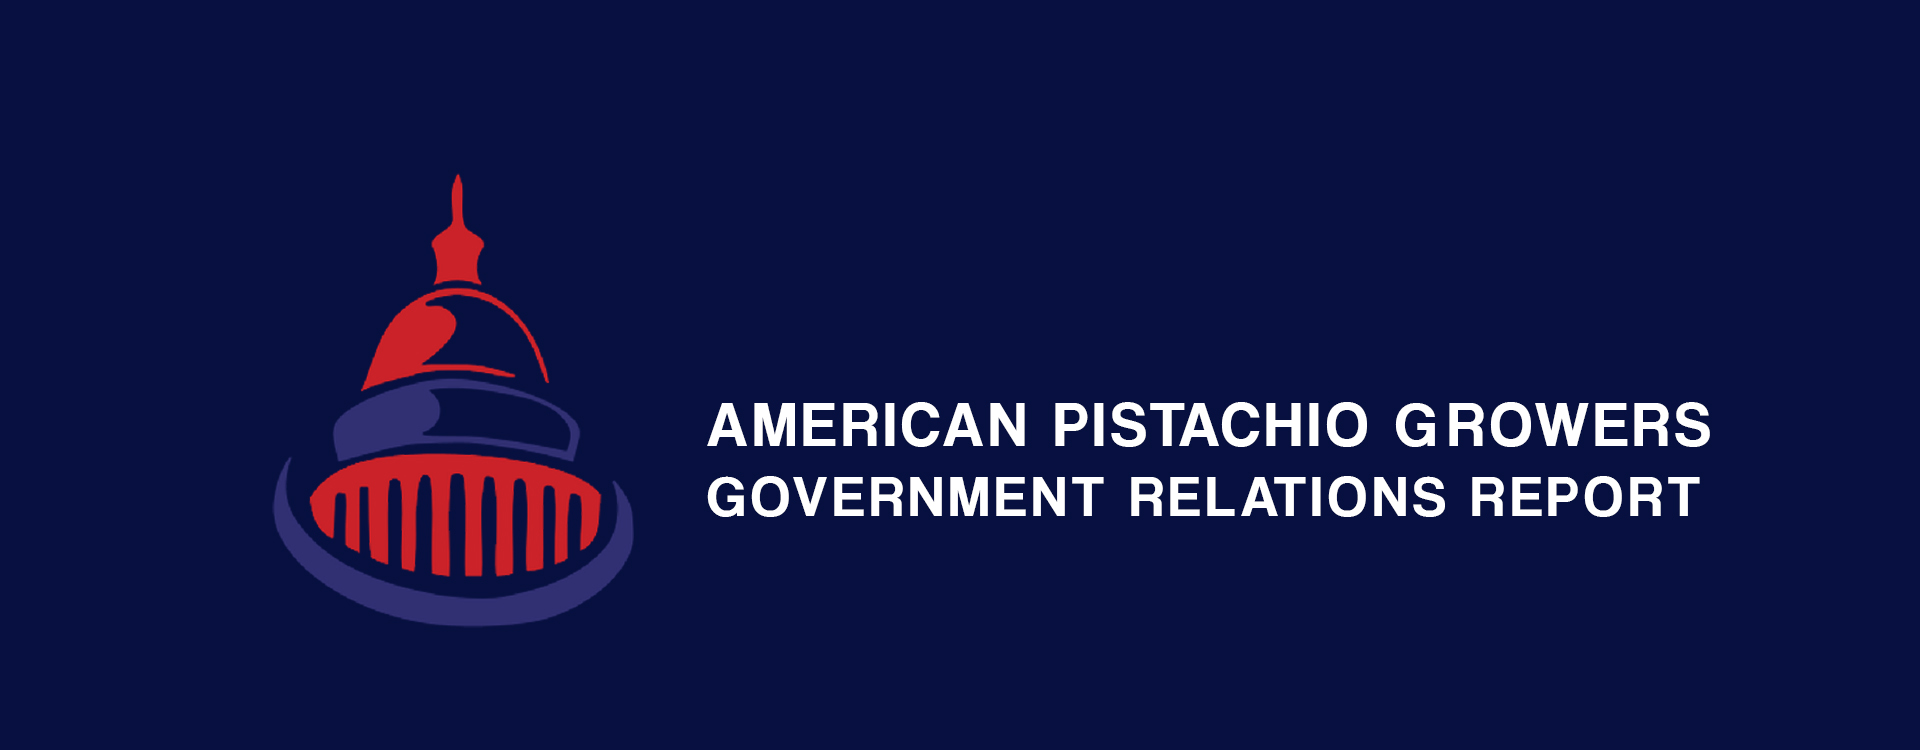 American Pistachio Government Relations